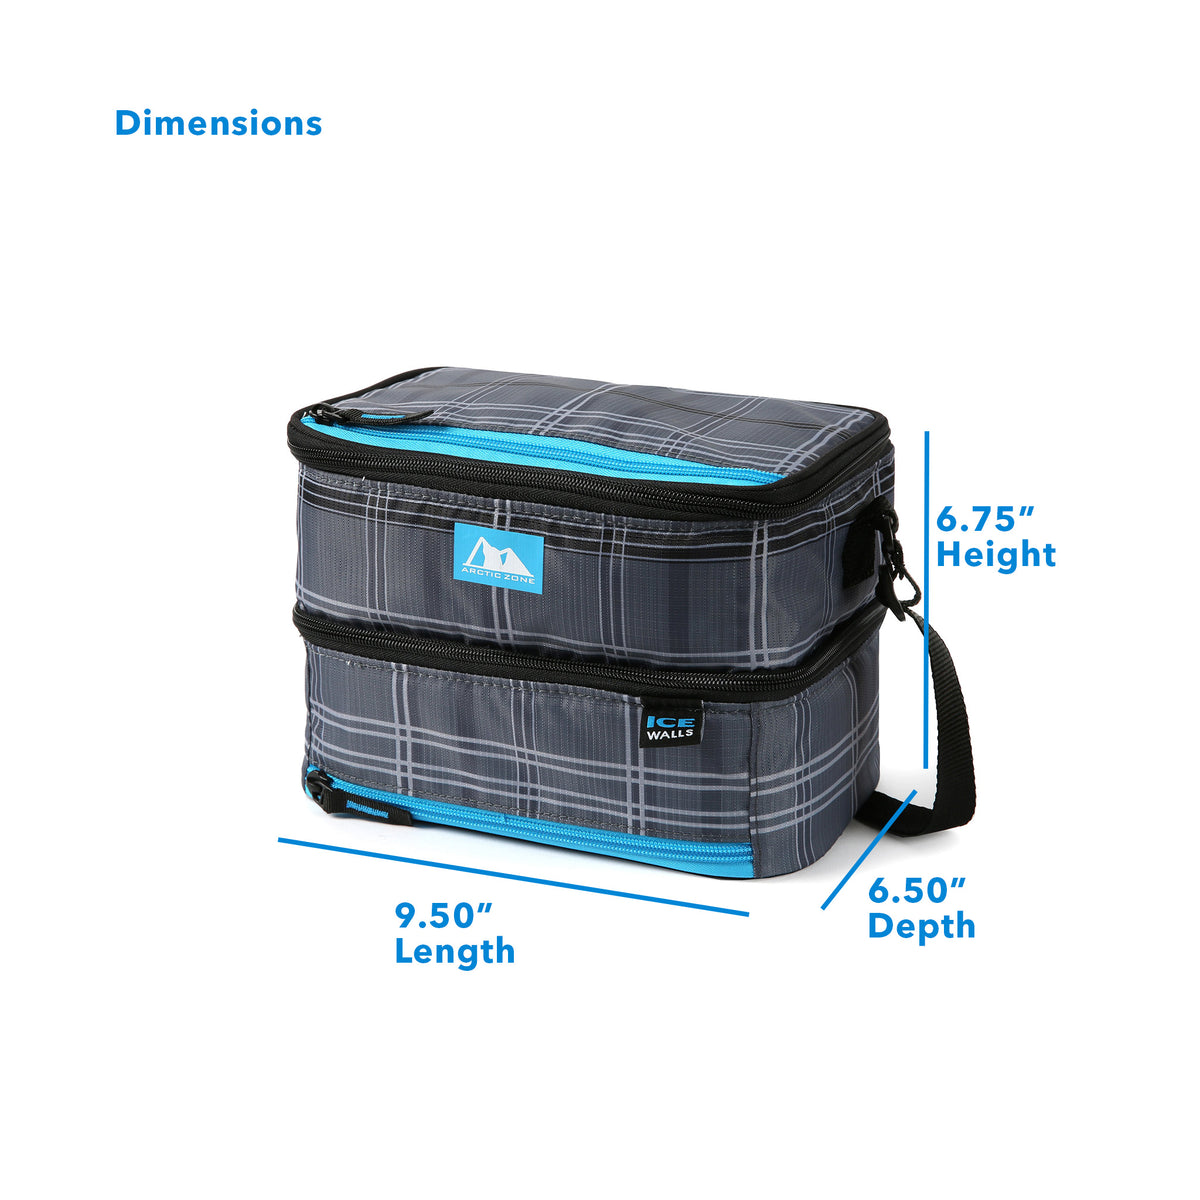 "Arctic Zone® Ice Walls® Dual Compartment Lunch Pack - Wilfred Plaid - Dimensions: (L x D x H) 9.50"" x 6.50"" x 6.75"""